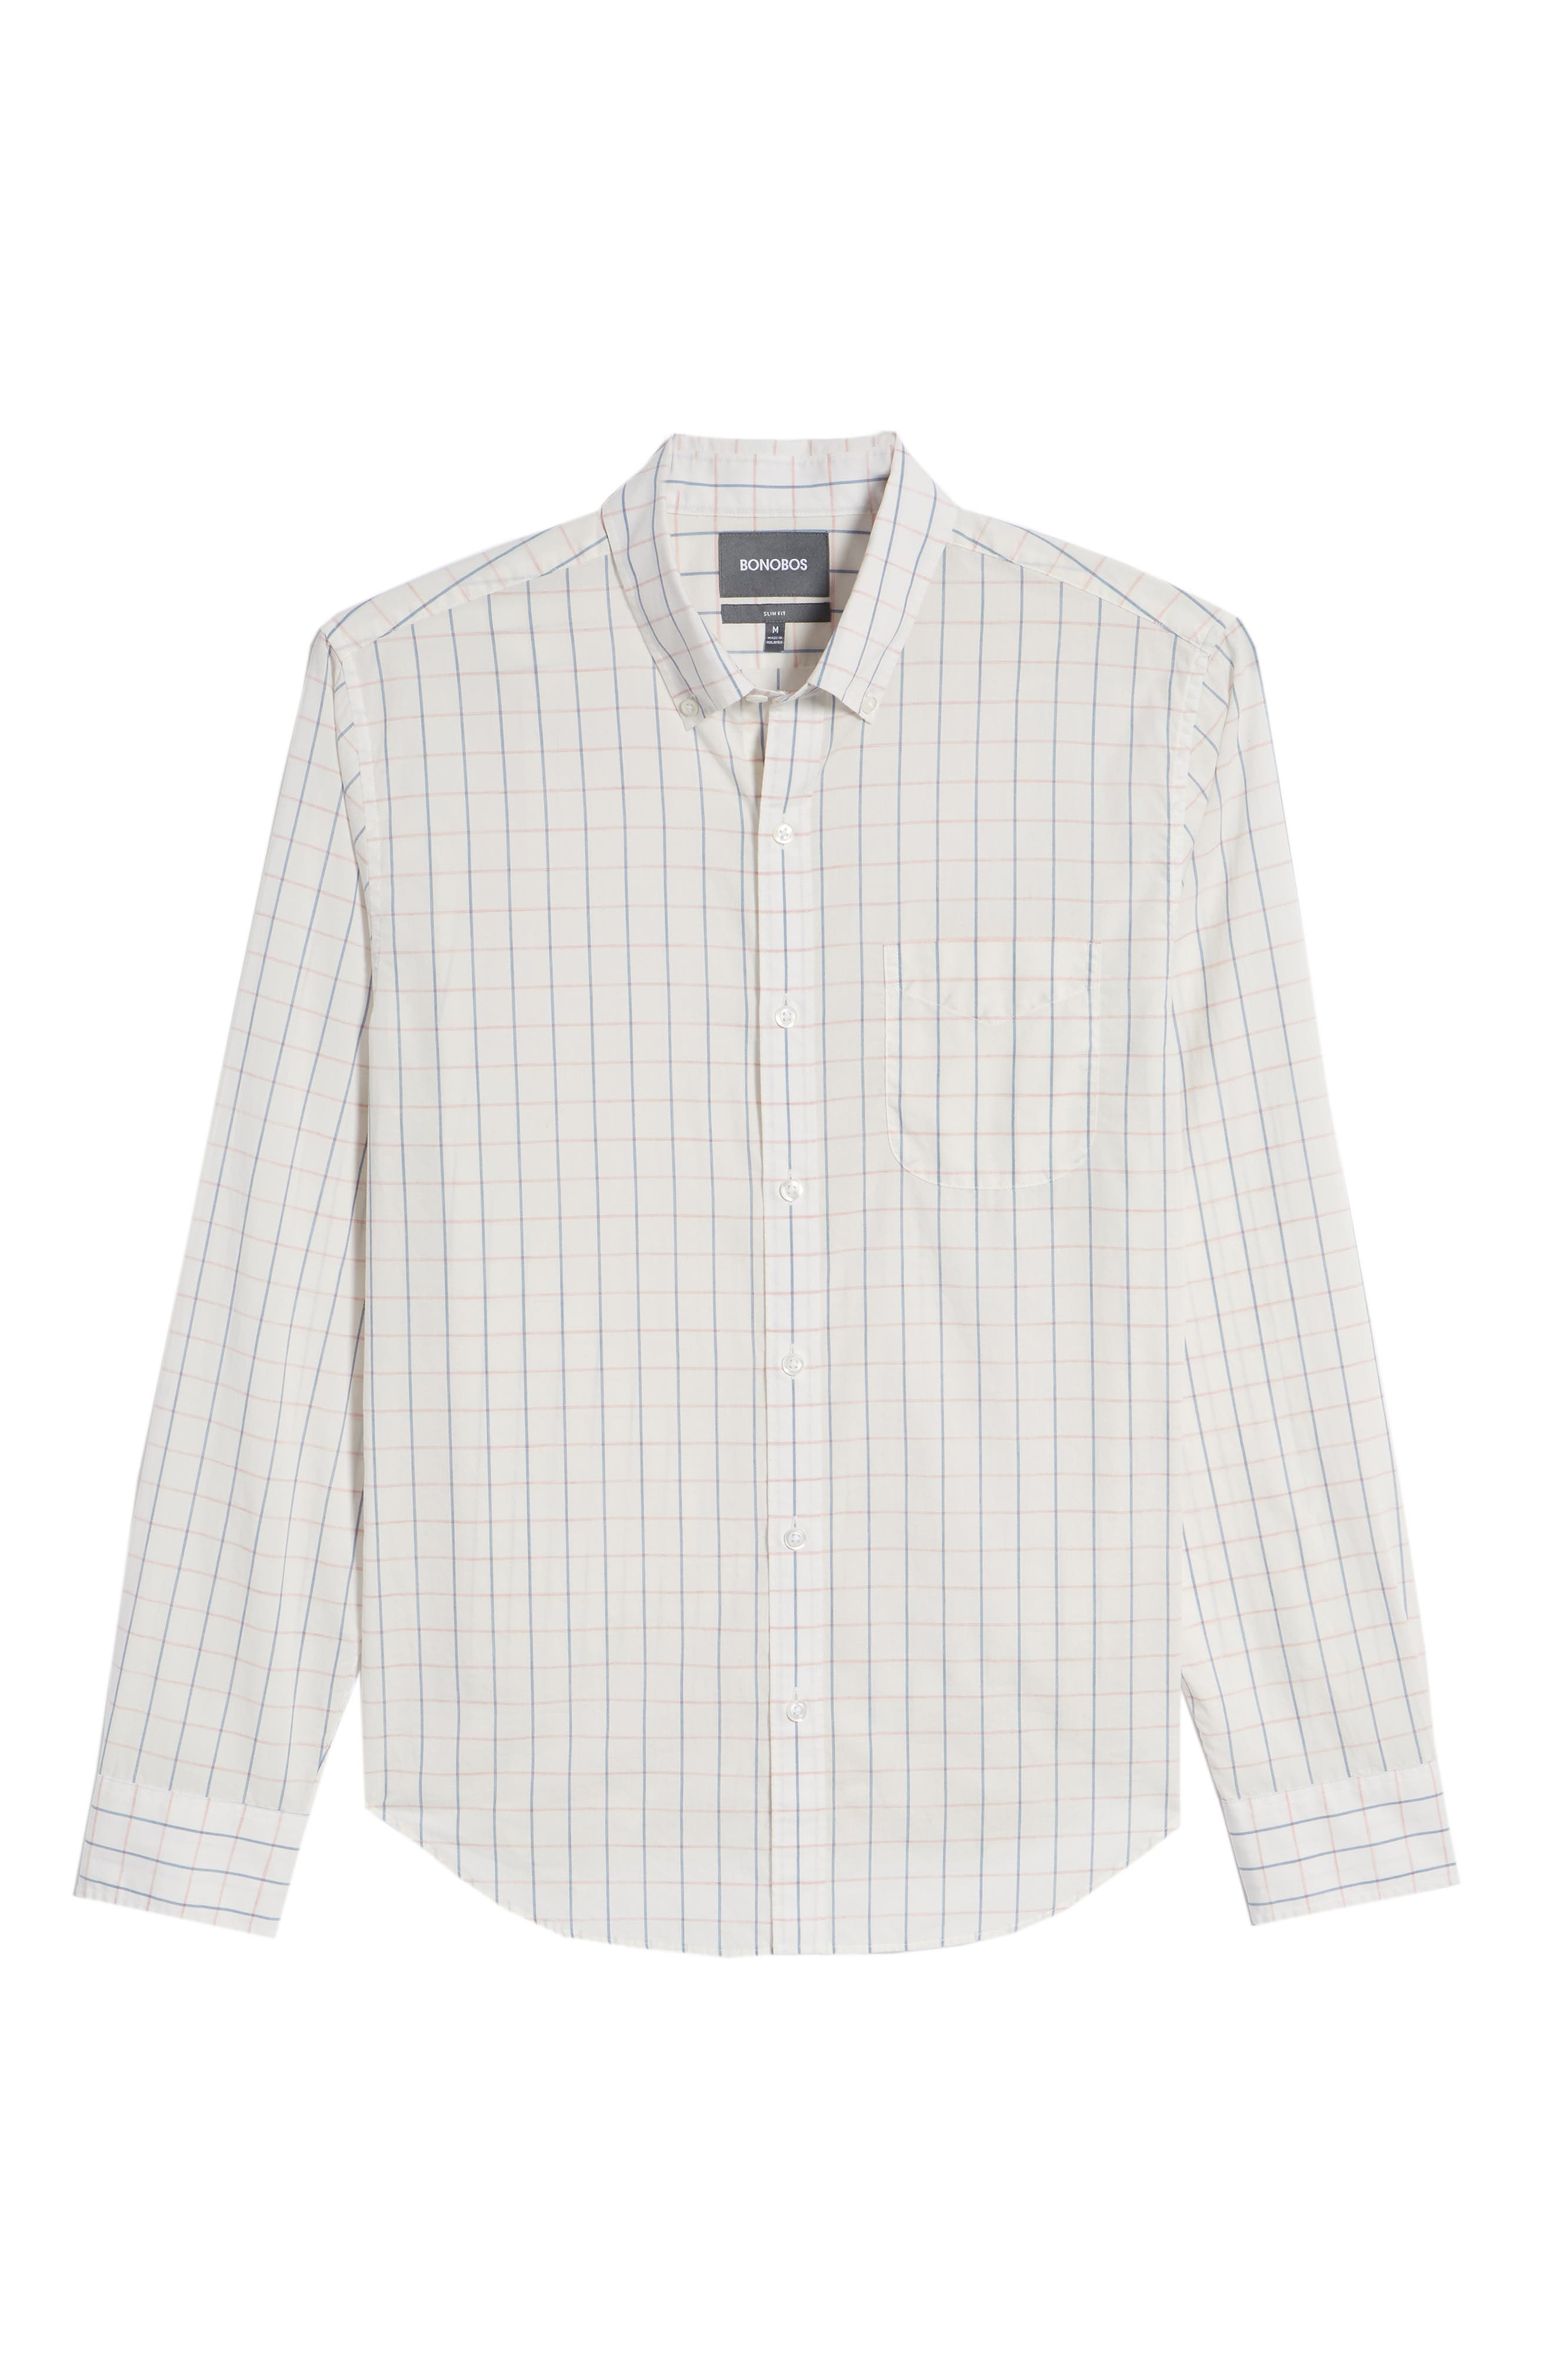 Summerweight Slim Fit Check Sport Shirt,                             Alternate thumbnail 6, color,                             Coyote Check - Heather Rose